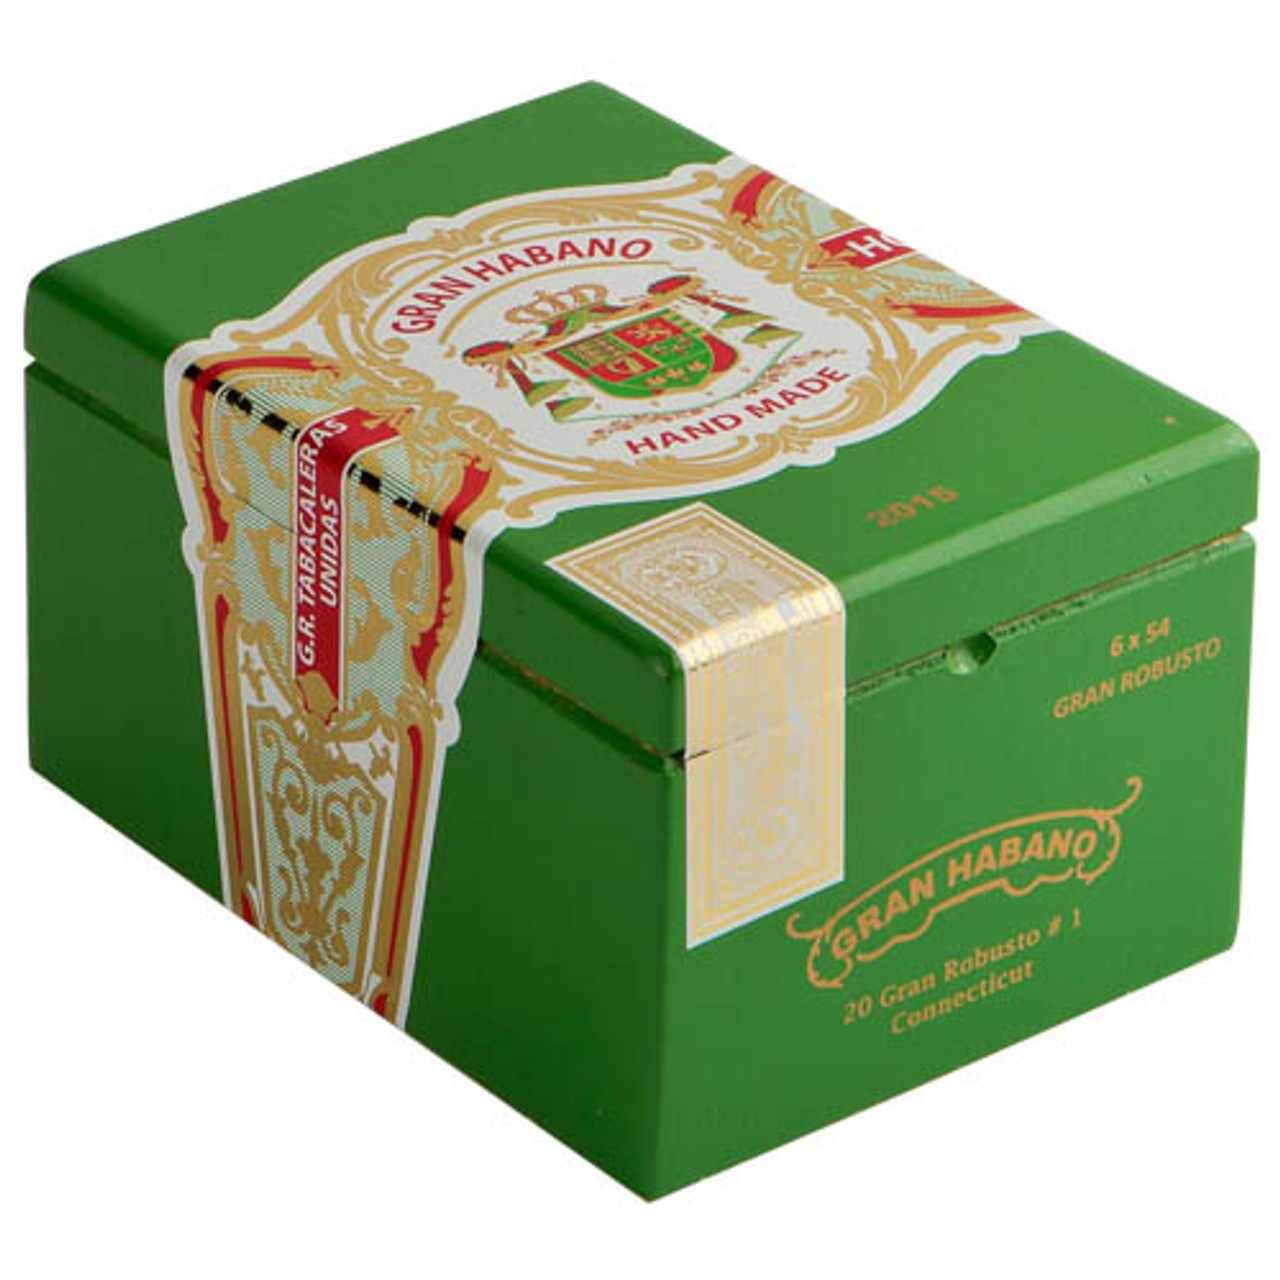 Gran Habano #1 Connecticut Imperiales Cigars - 6 x 60 (Box of 20)